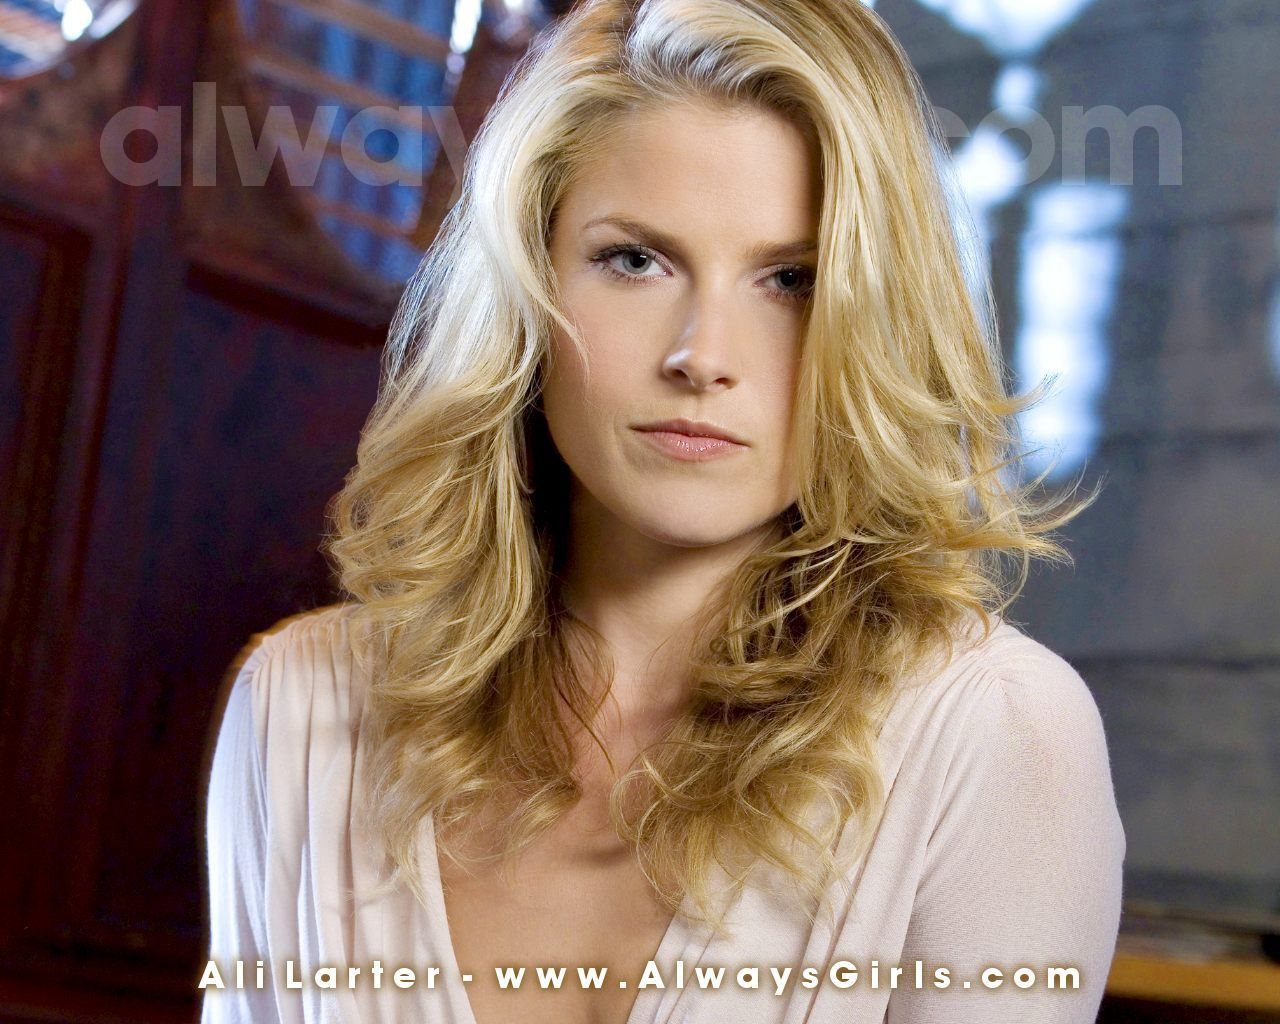 Ali Larter Wallpaper 1280x1024 4279